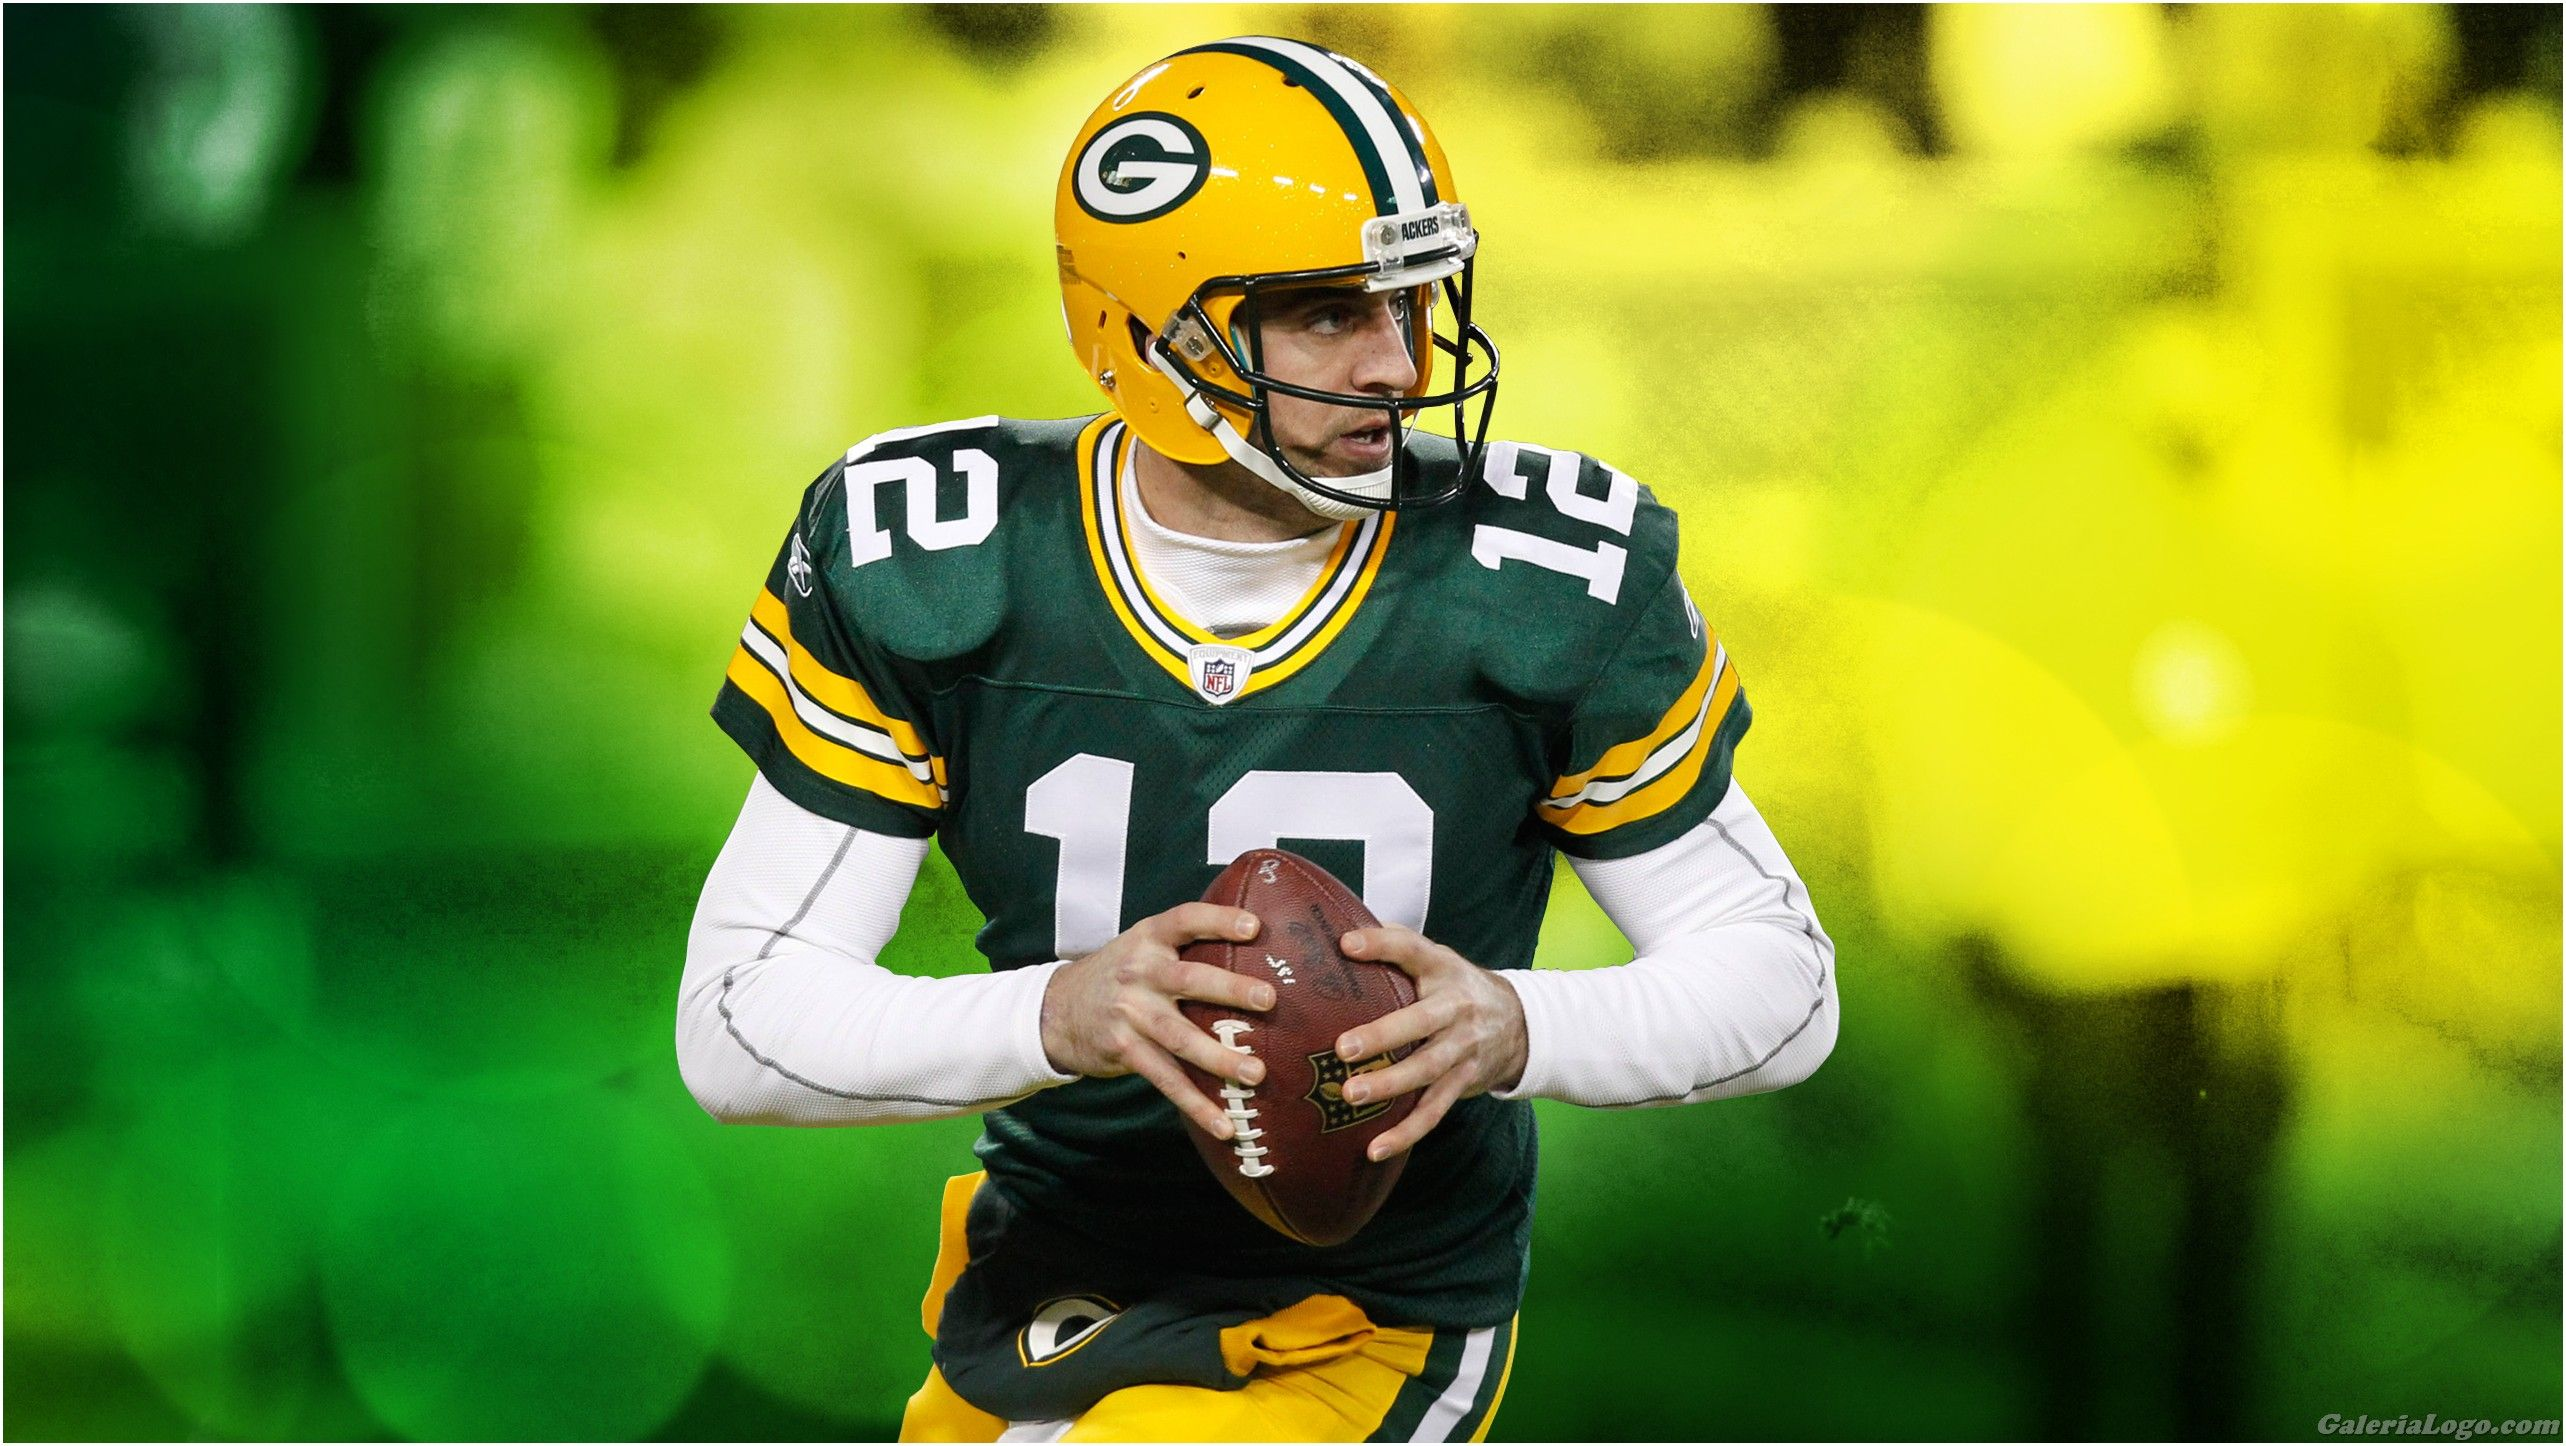 Aaron Rodgers Wallpaper Green Bay Packers Wallpaper Green Bay Packers Funny Green Bay Packers